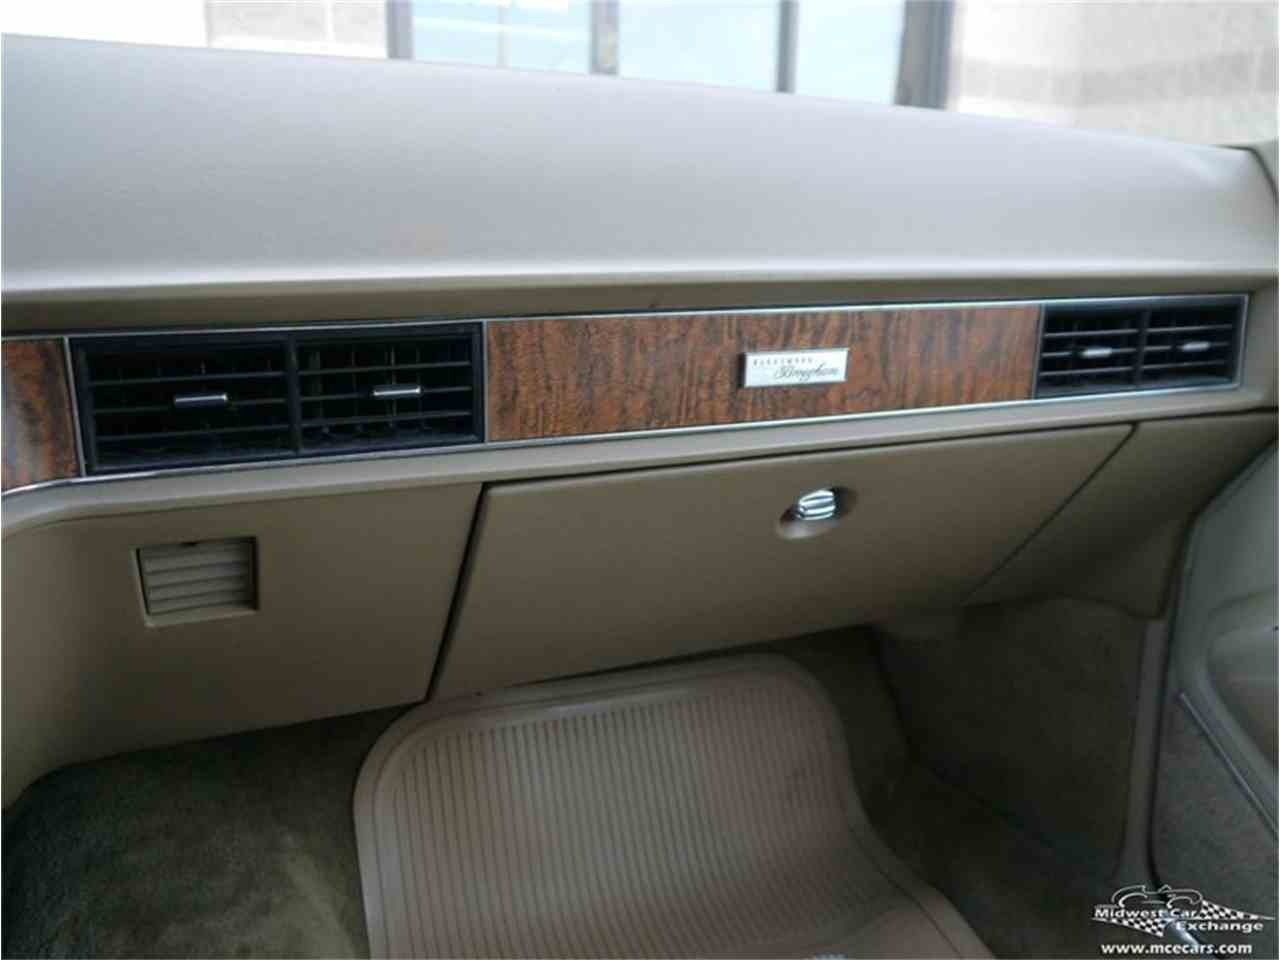 Large Picture of '70 Cadillac Fleetwood Brougham located in Illinois Offered by Midwest Car Exchange - M9KI